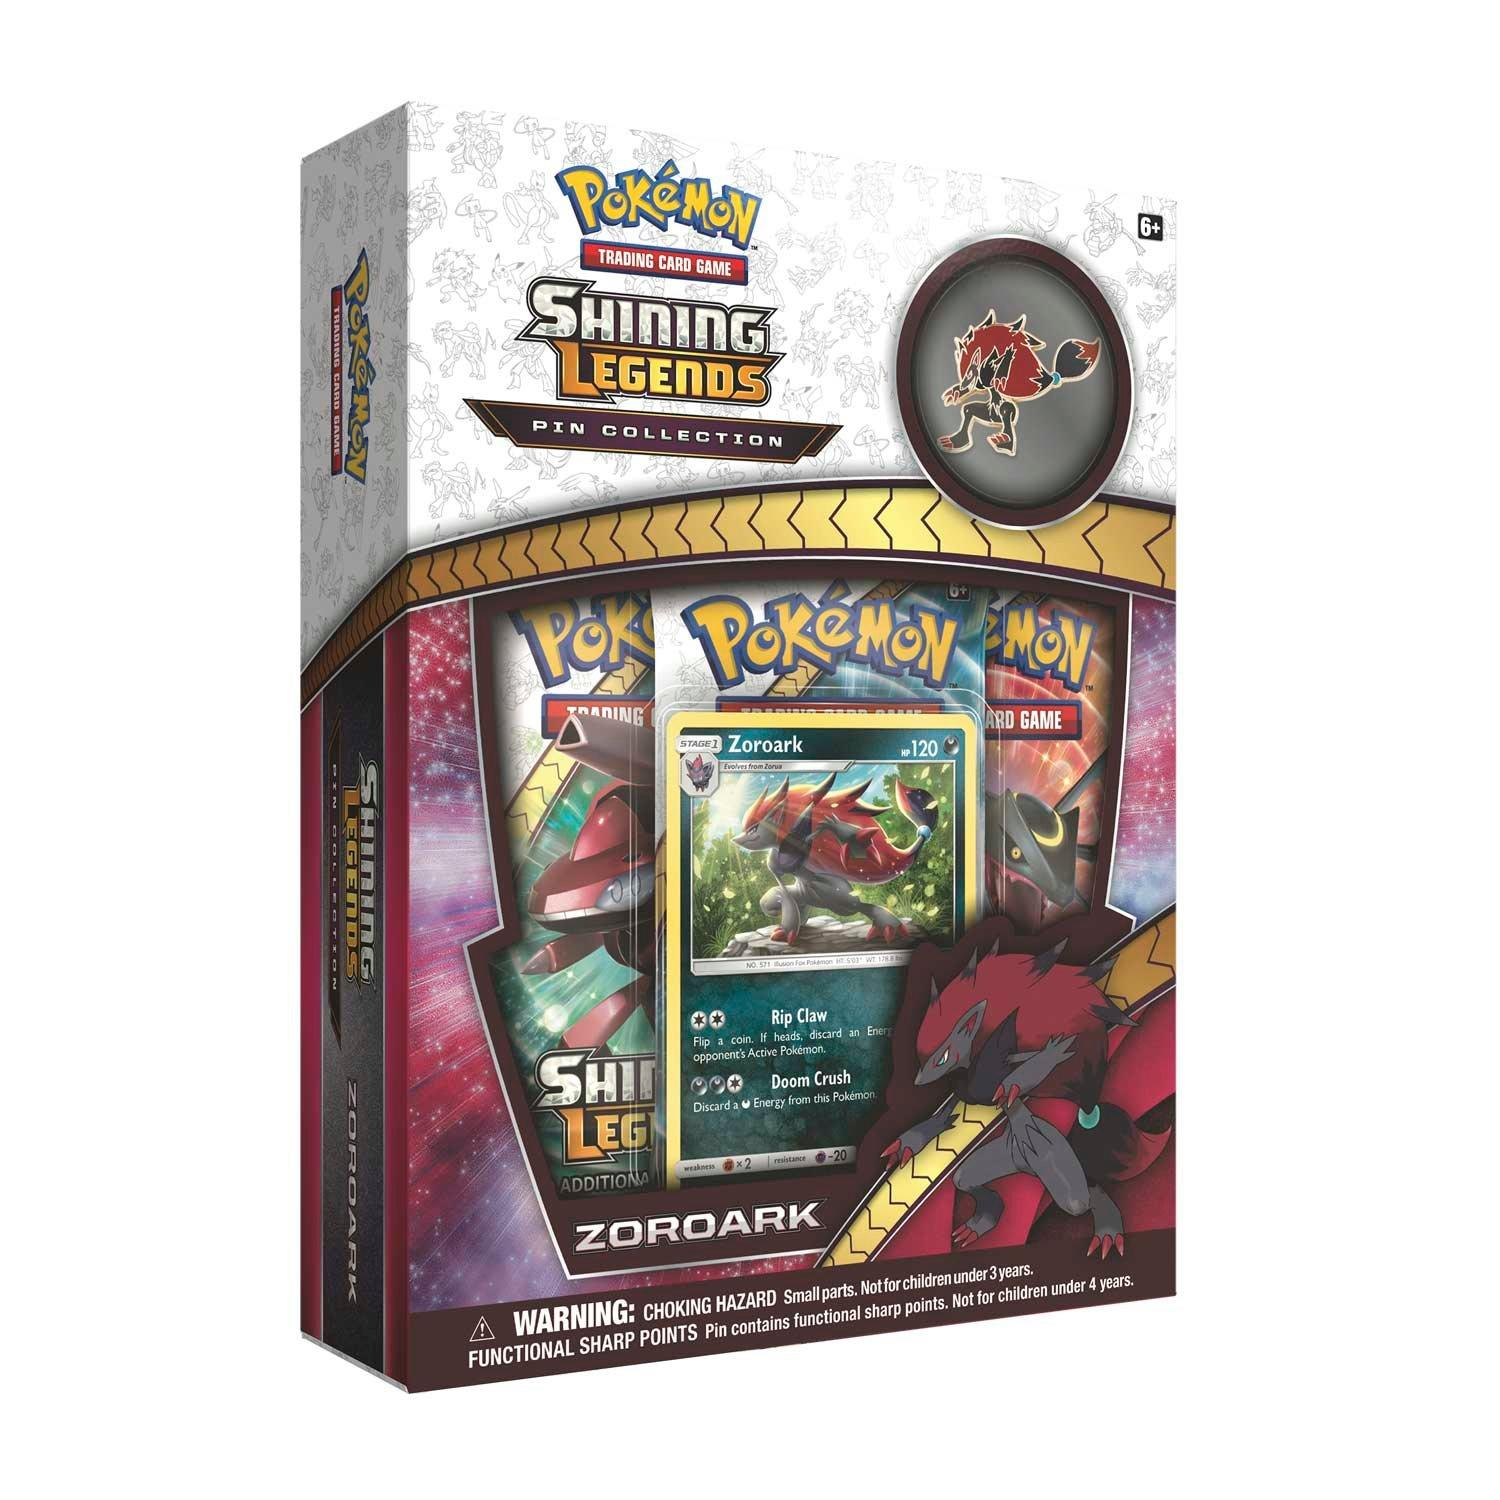 Pokemon Trading Card Game Zoroark Shining Legends Pin Collection Gamestop